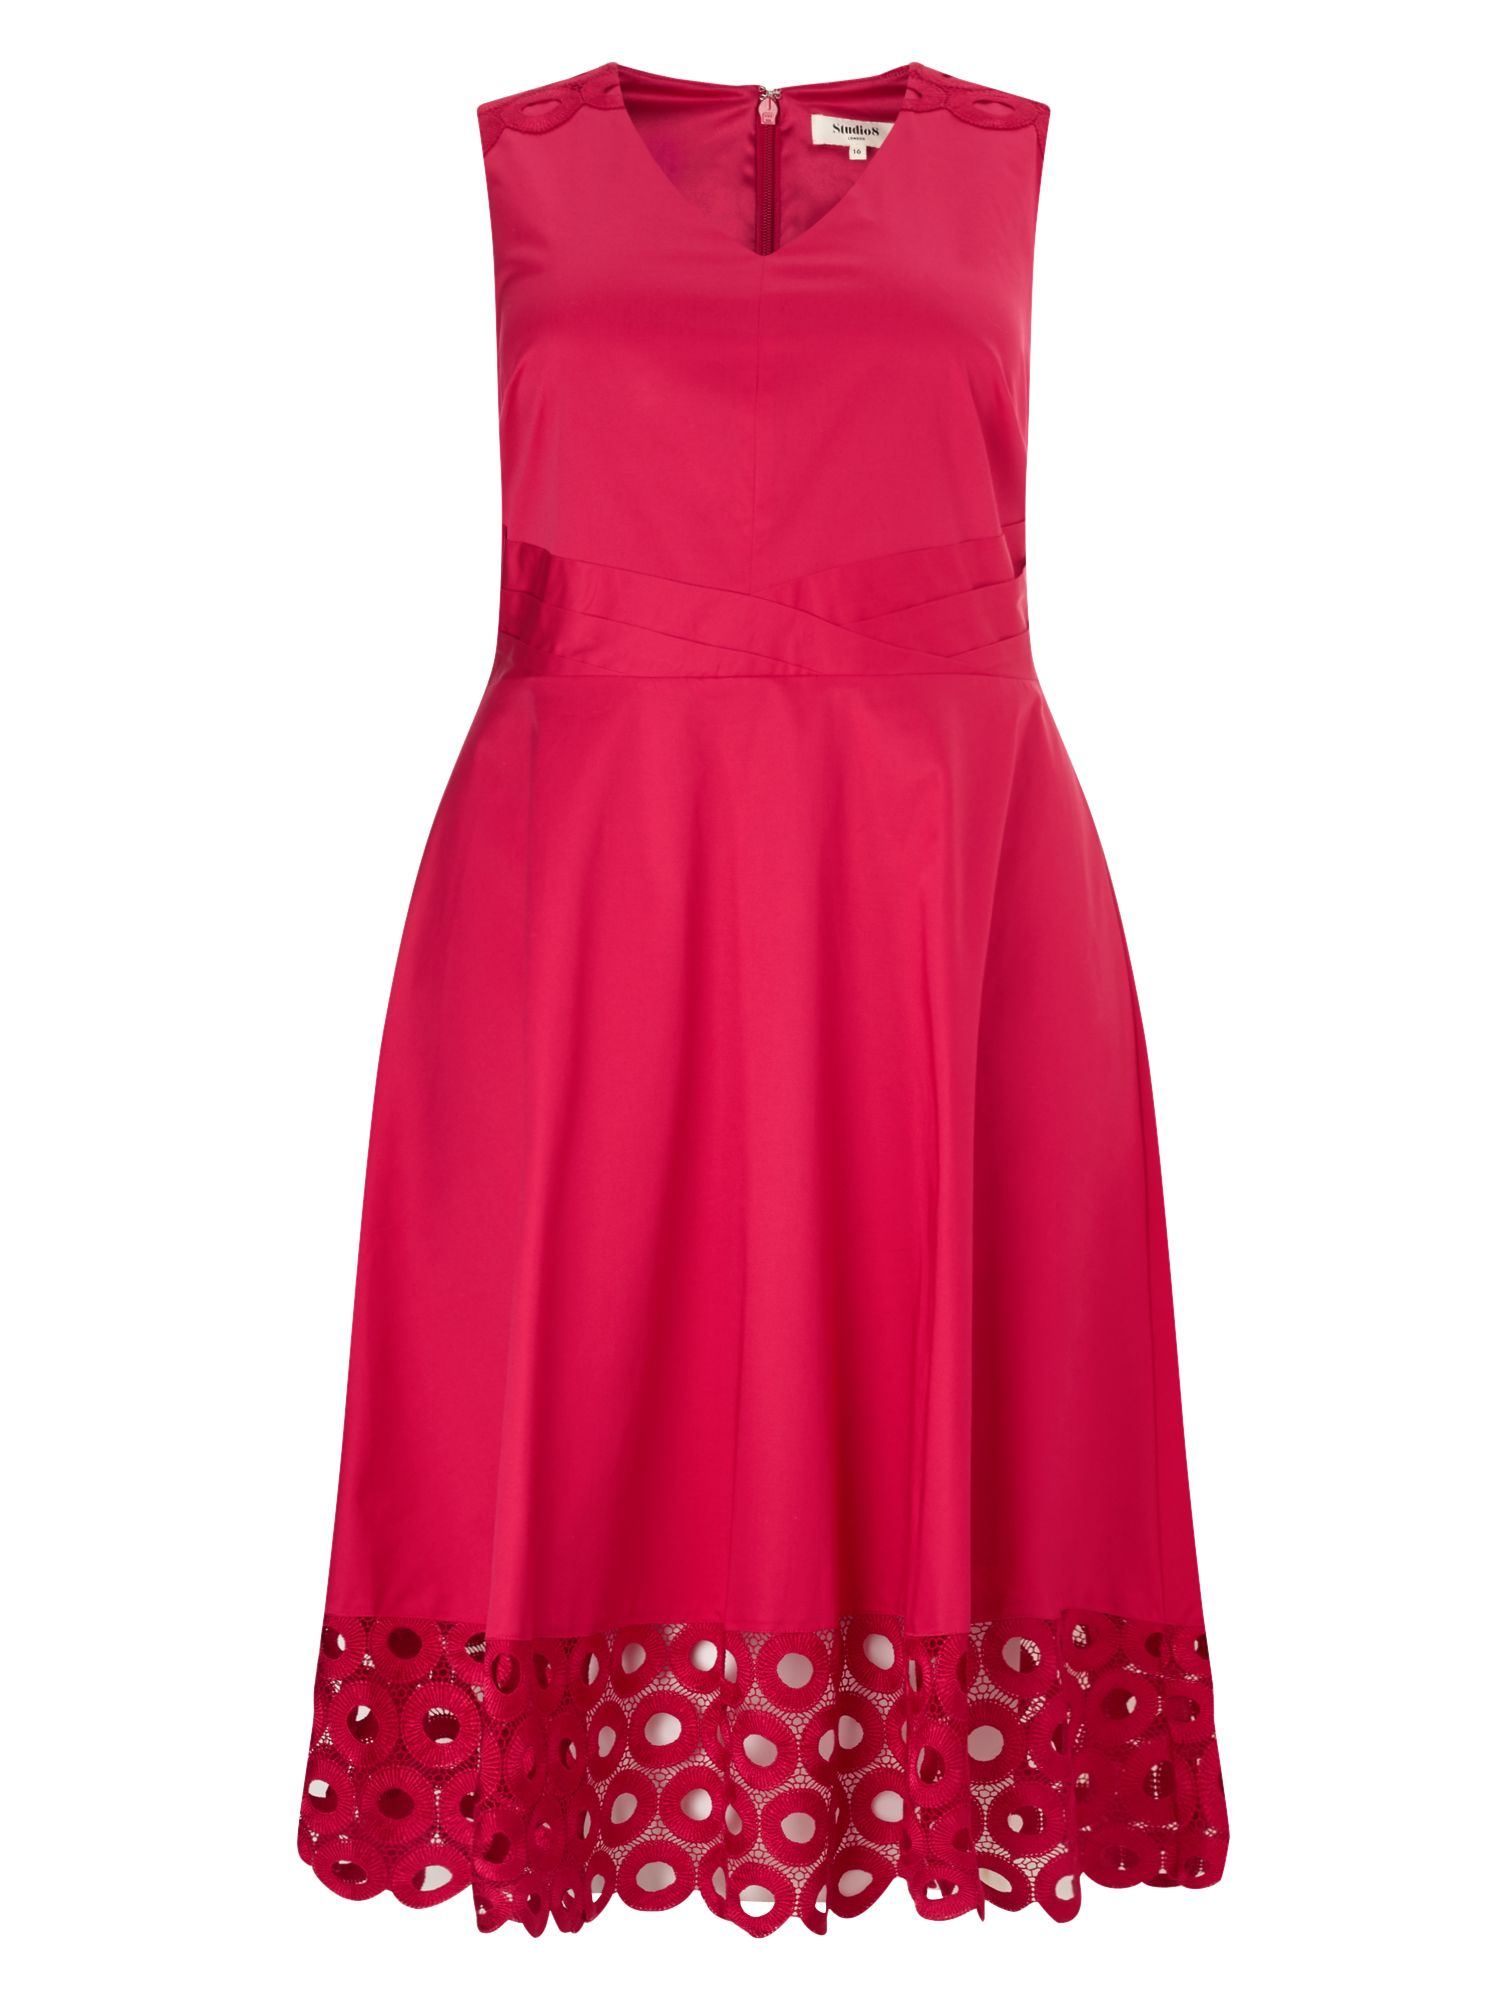 Studio 8 Adelaide Dress, Pink